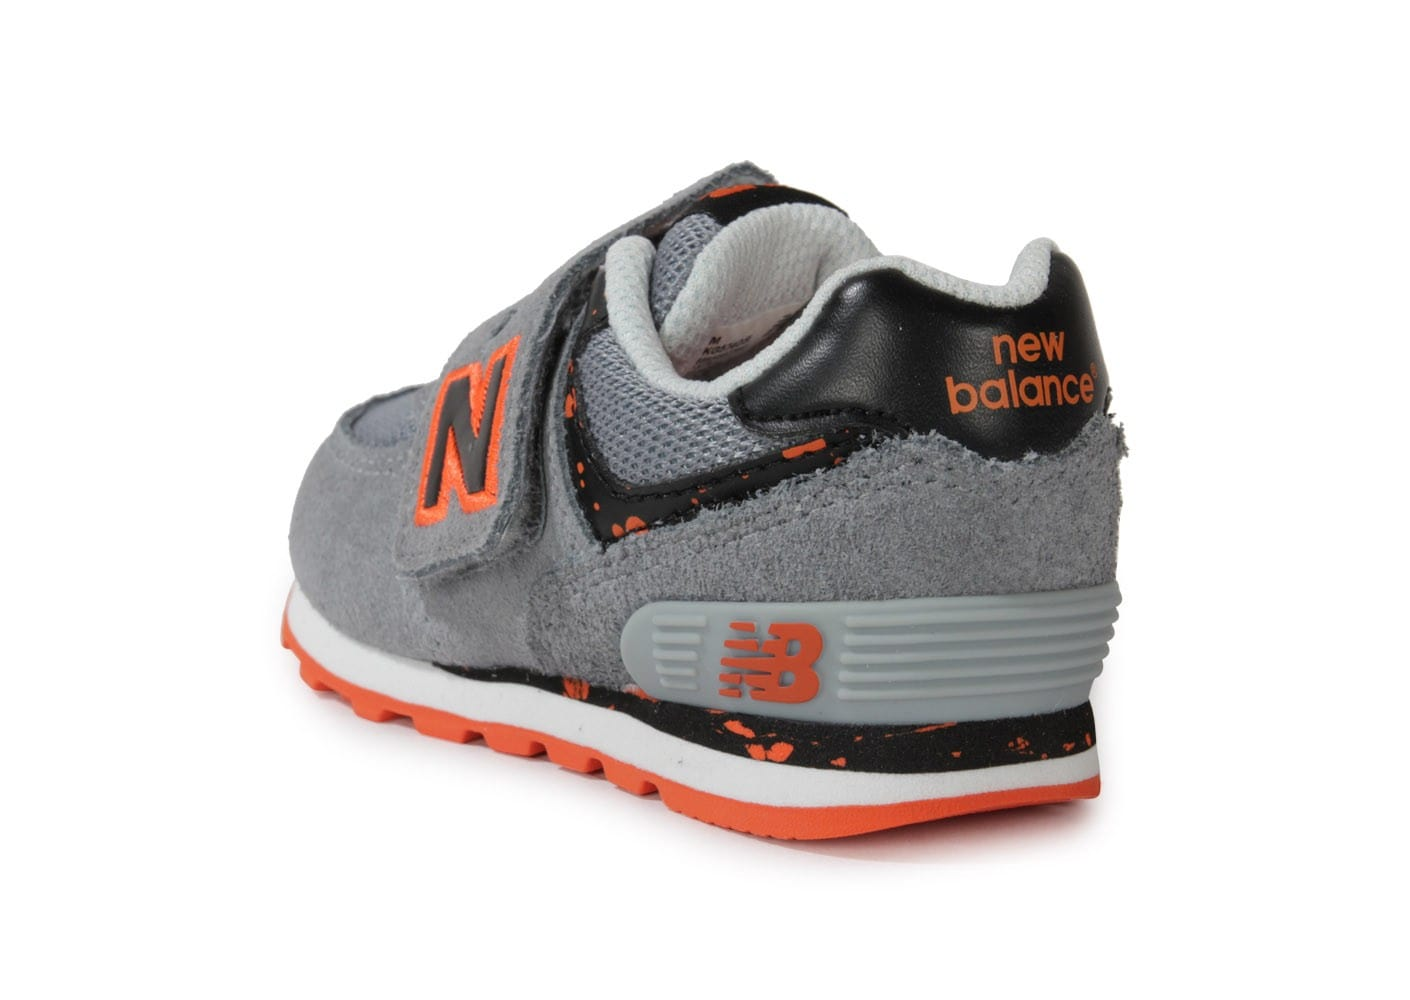 new balance kg574 osi b b grise et orange chaussures chaussures chausport. Black Bedroom Furniture Sets. Home Design Ideas